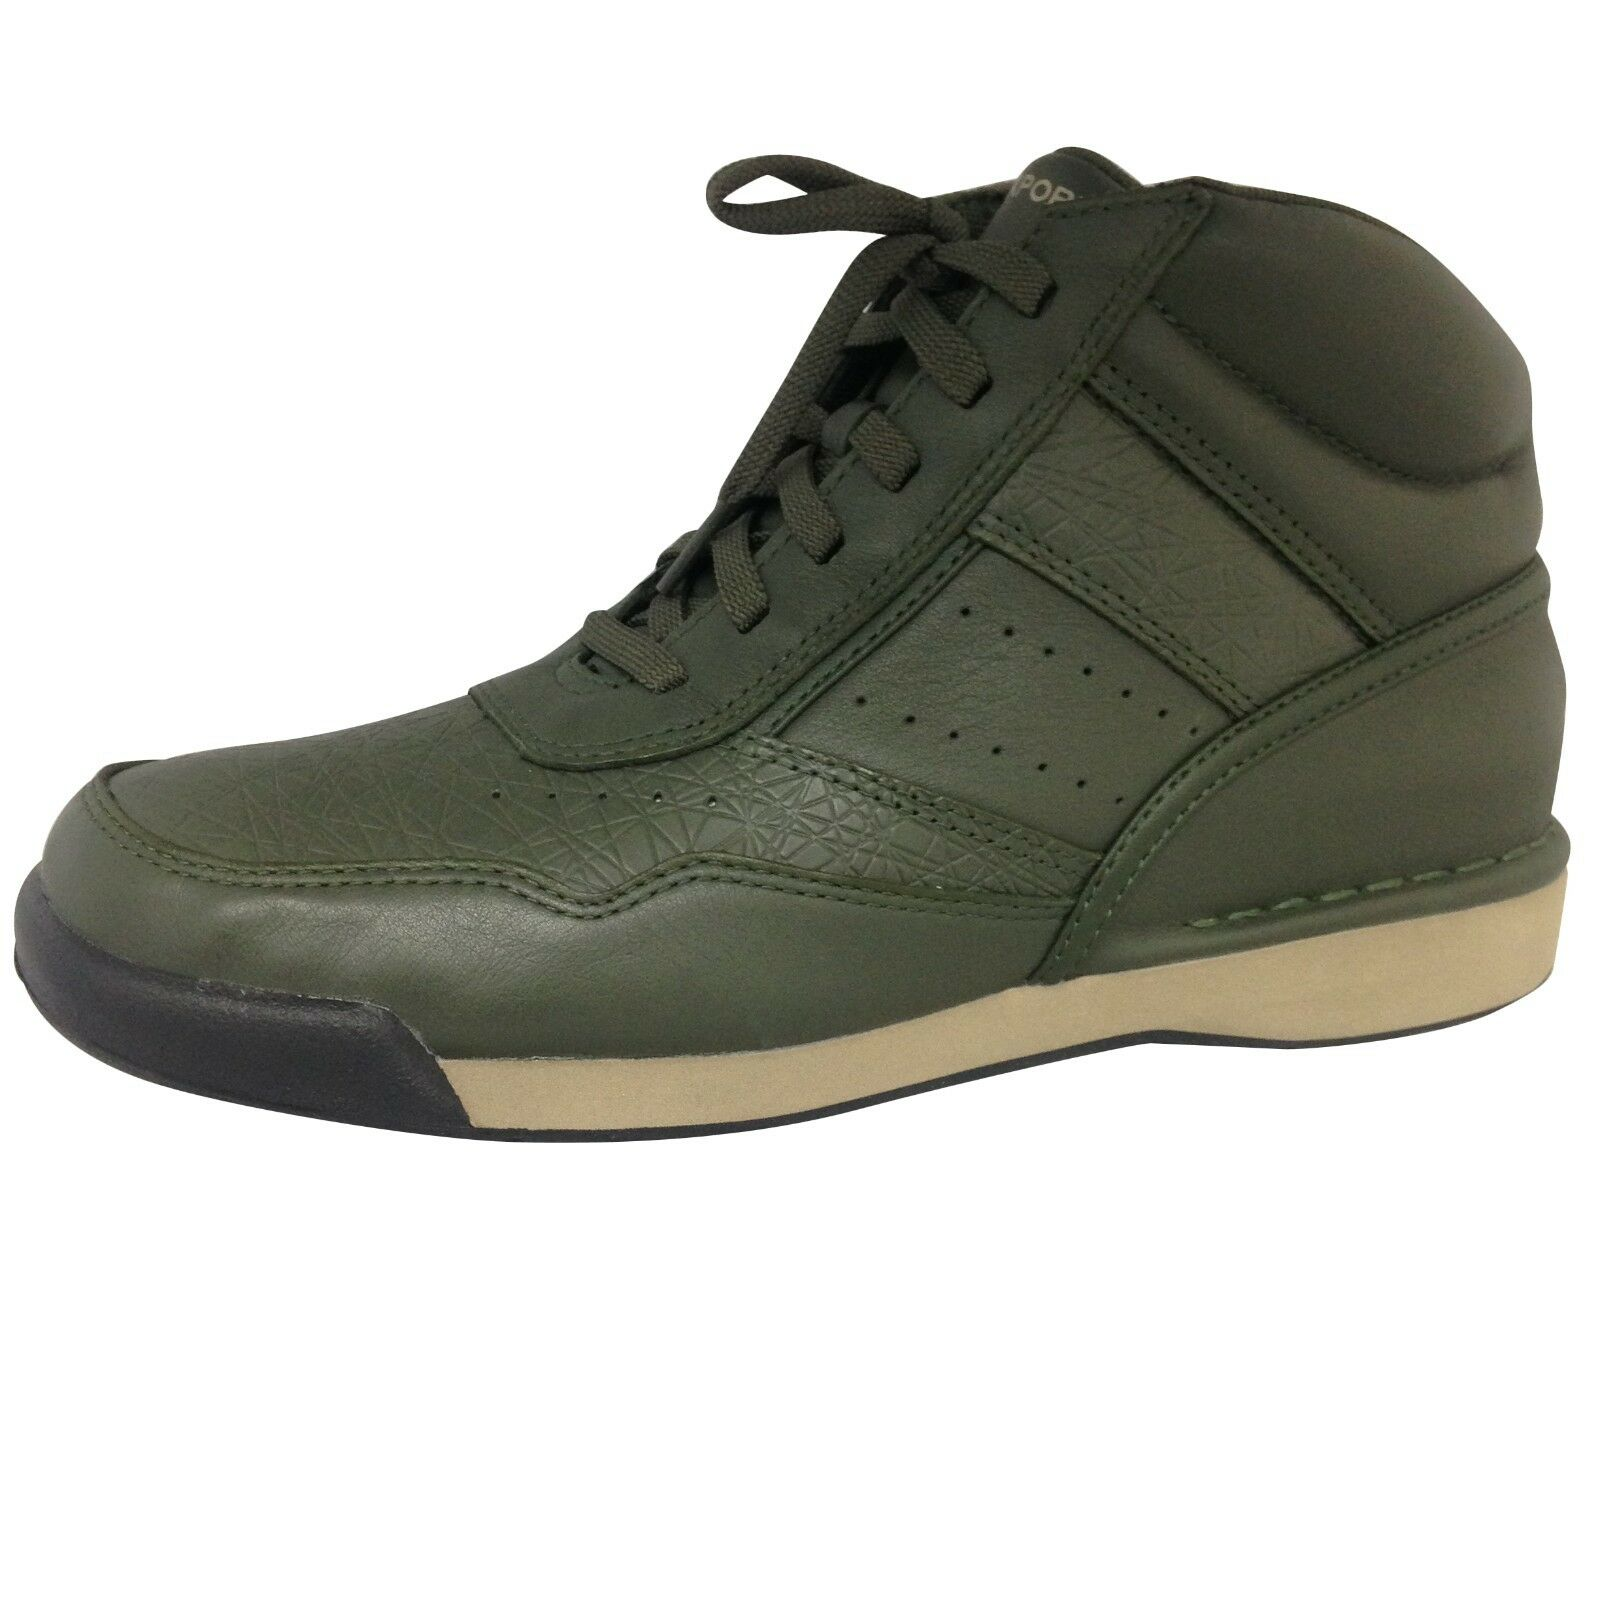 Rockport 7100 Boot High Forest Night Green Walking Shoe